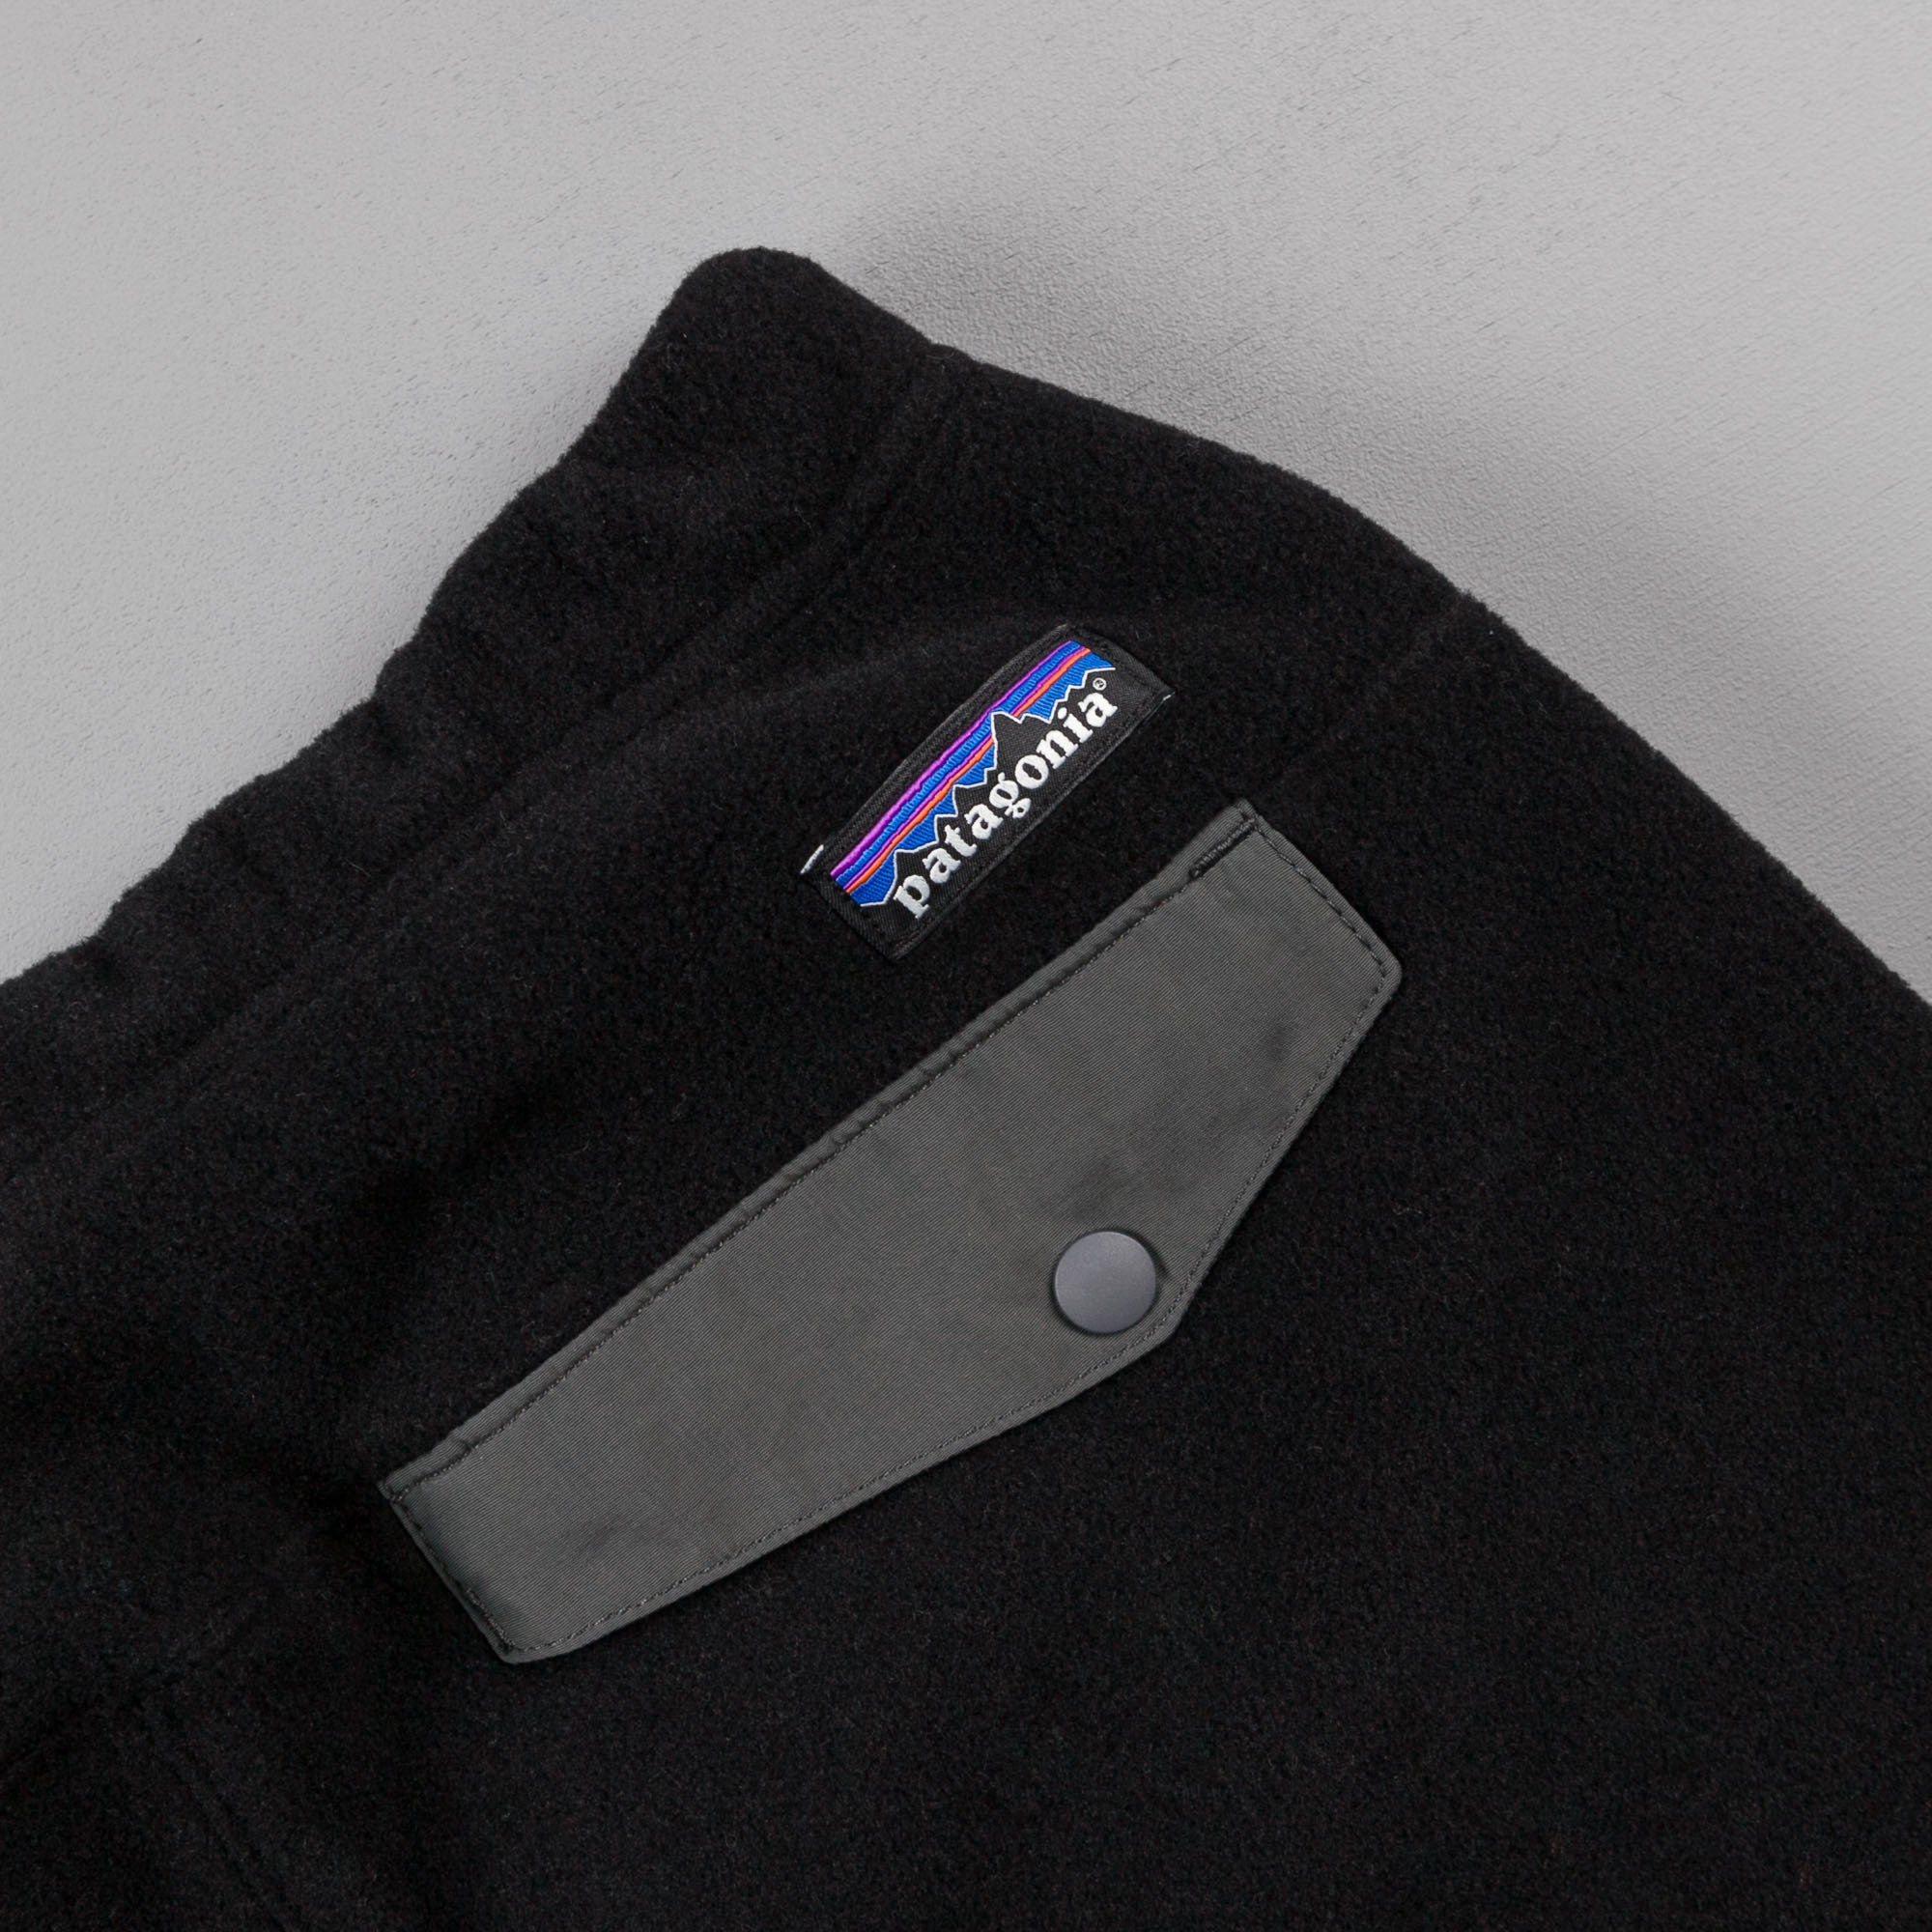 Patagonia Synchilla Snap-T Pant - Black / Forge Grey